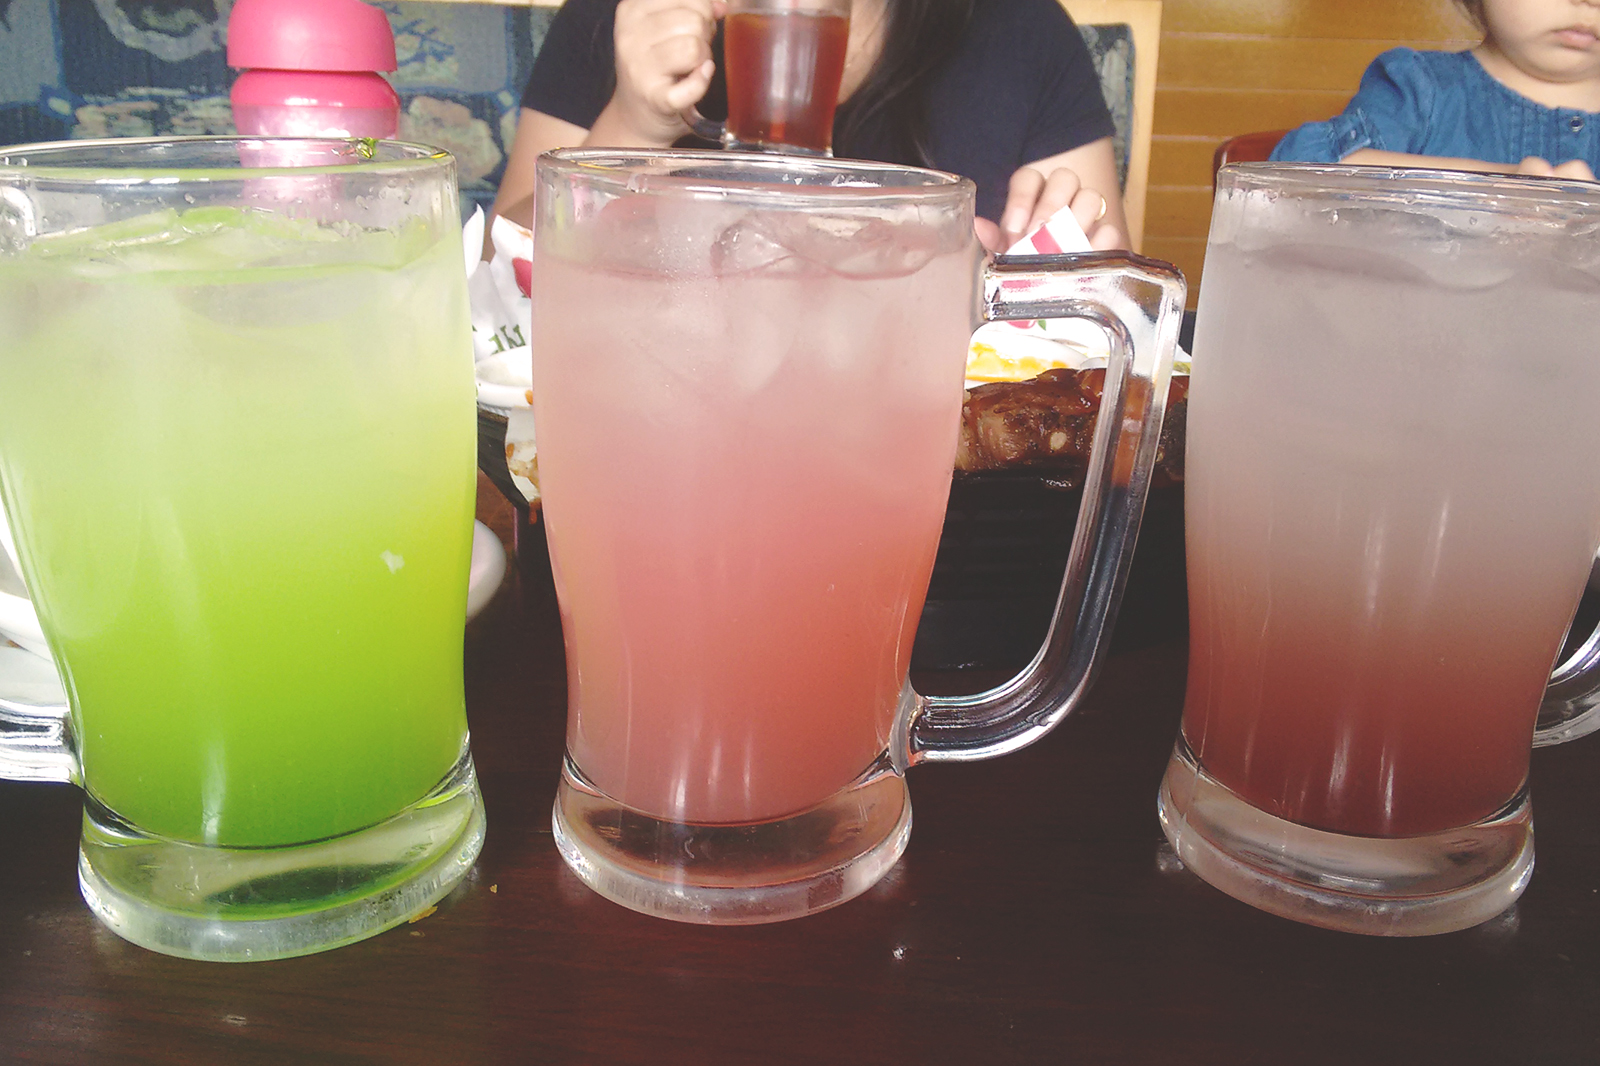 lemonades applebee's Campinas